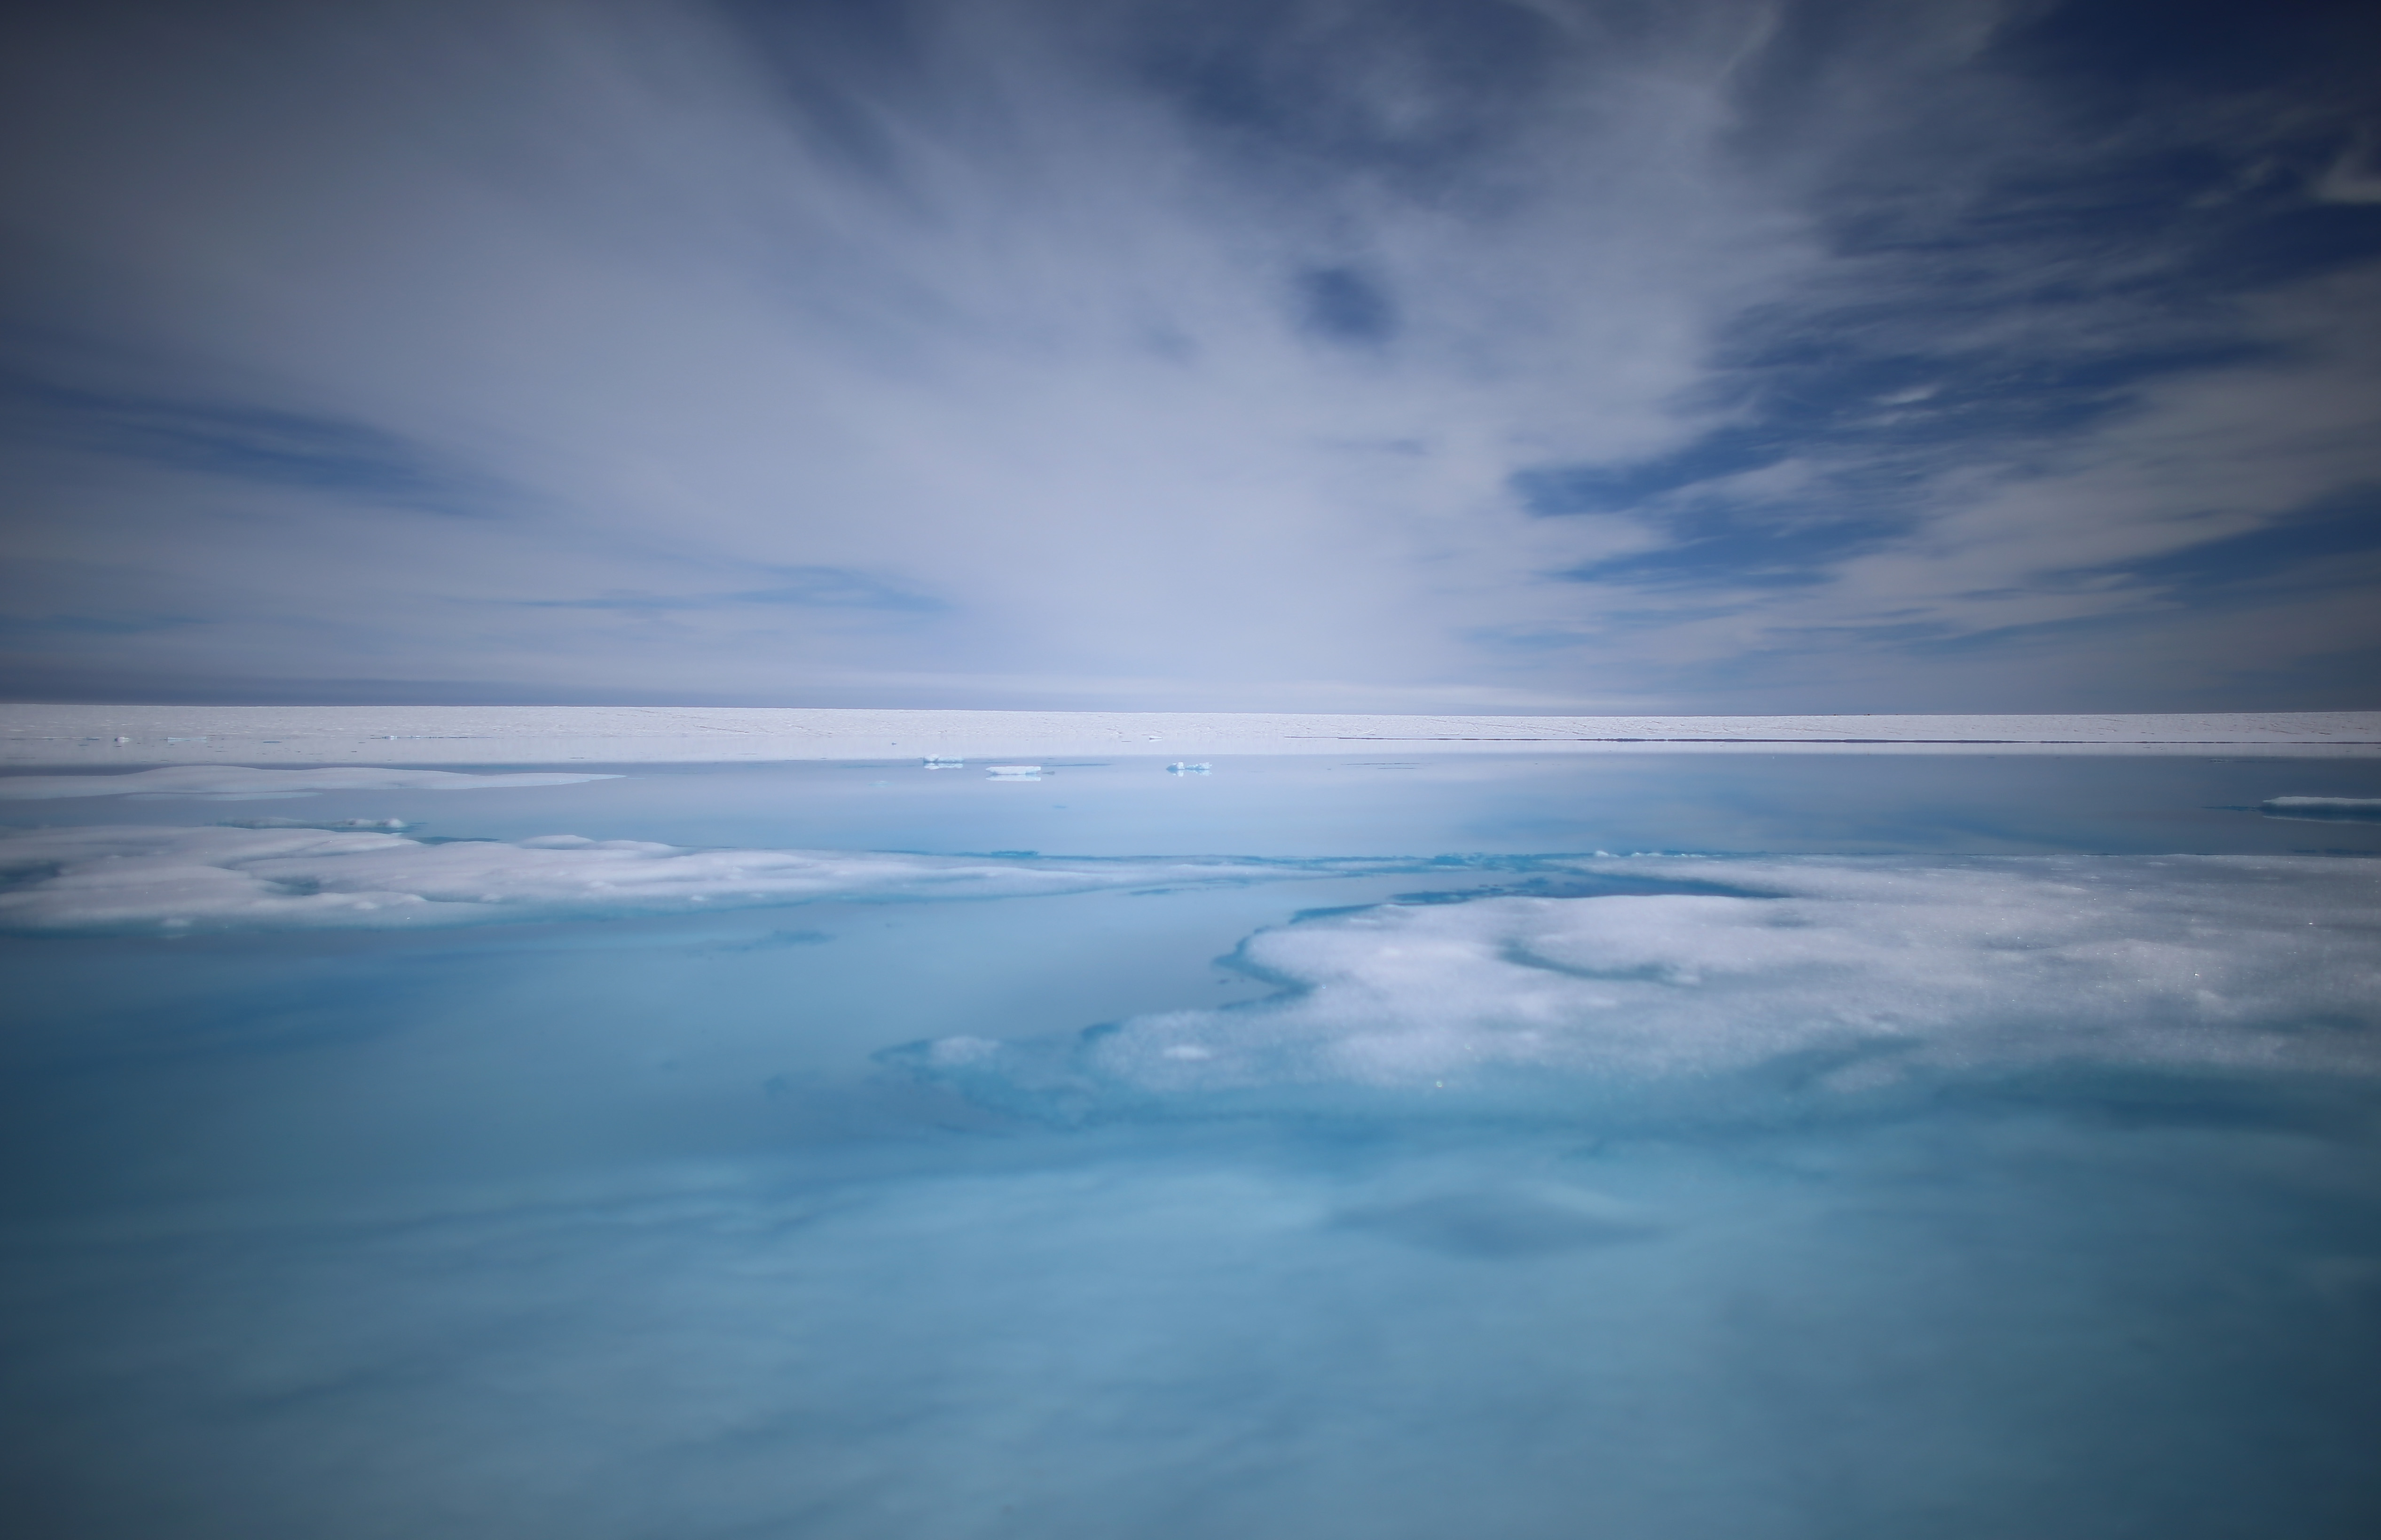 Part of the glacial ice sheet that covers about 80 percent of the country is seen on July 17, 2013 on the Glacial Ice Sheet, Greenland.